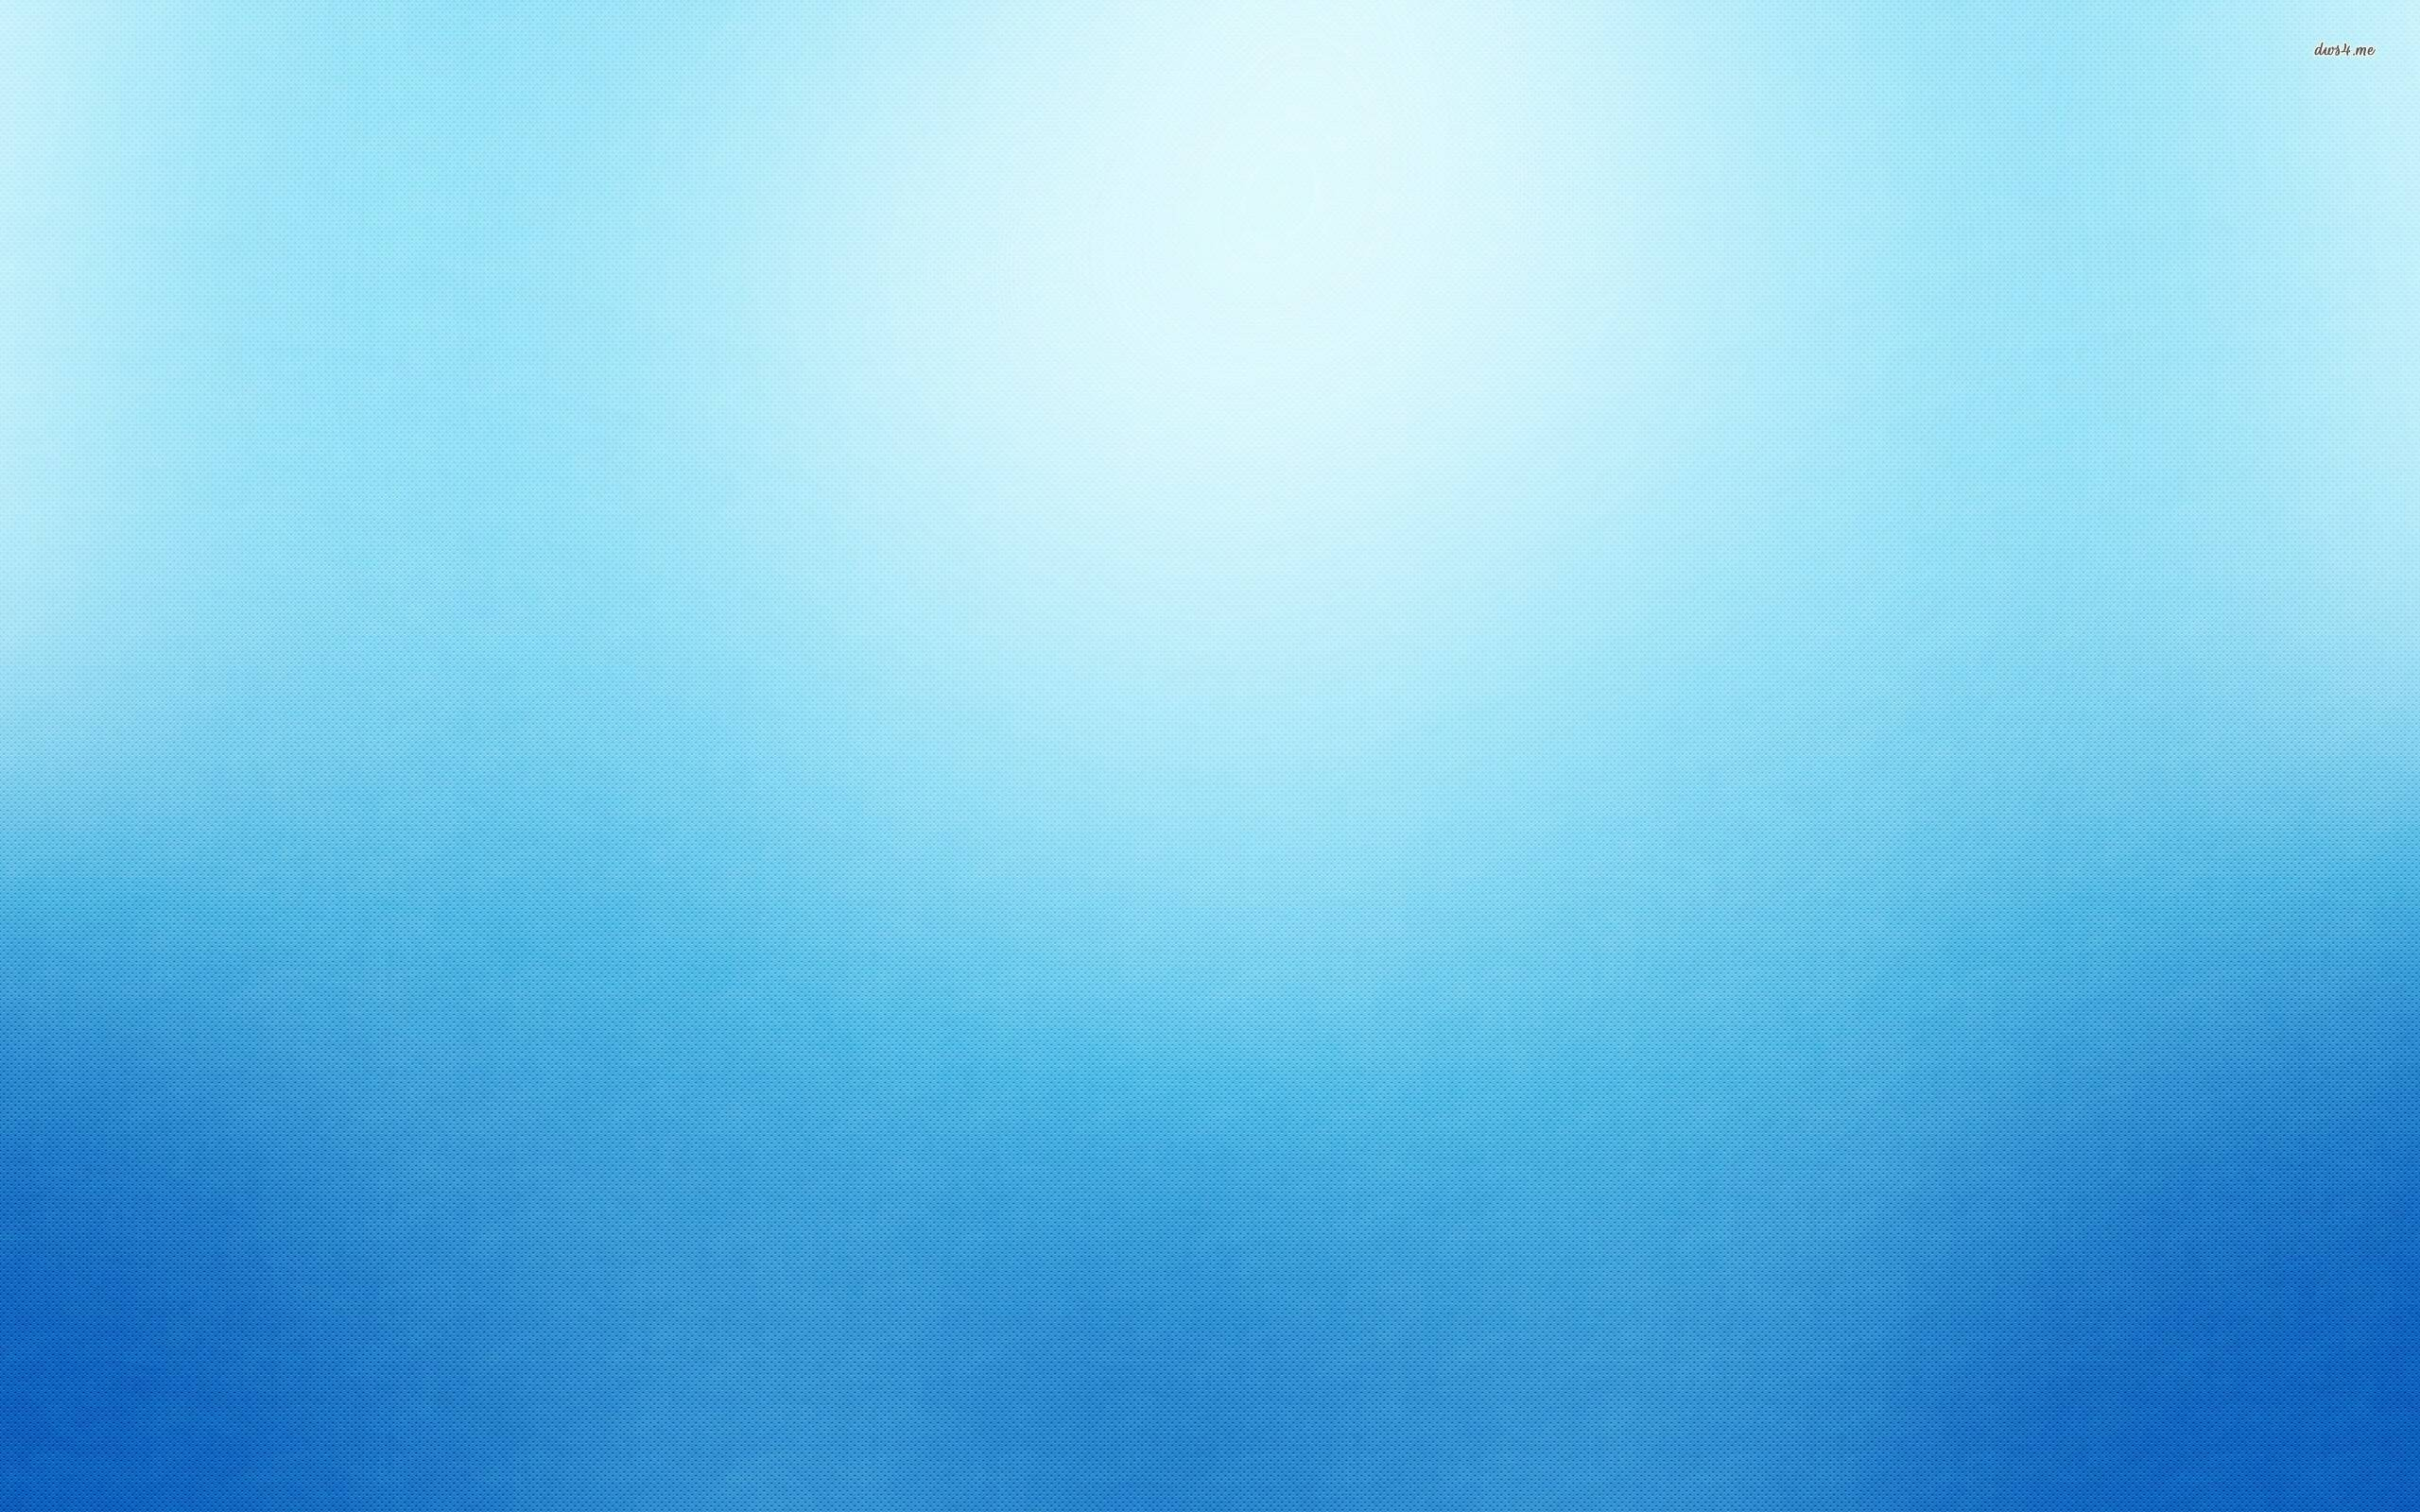 wallpaper hd dlwallhd blue - photo #3